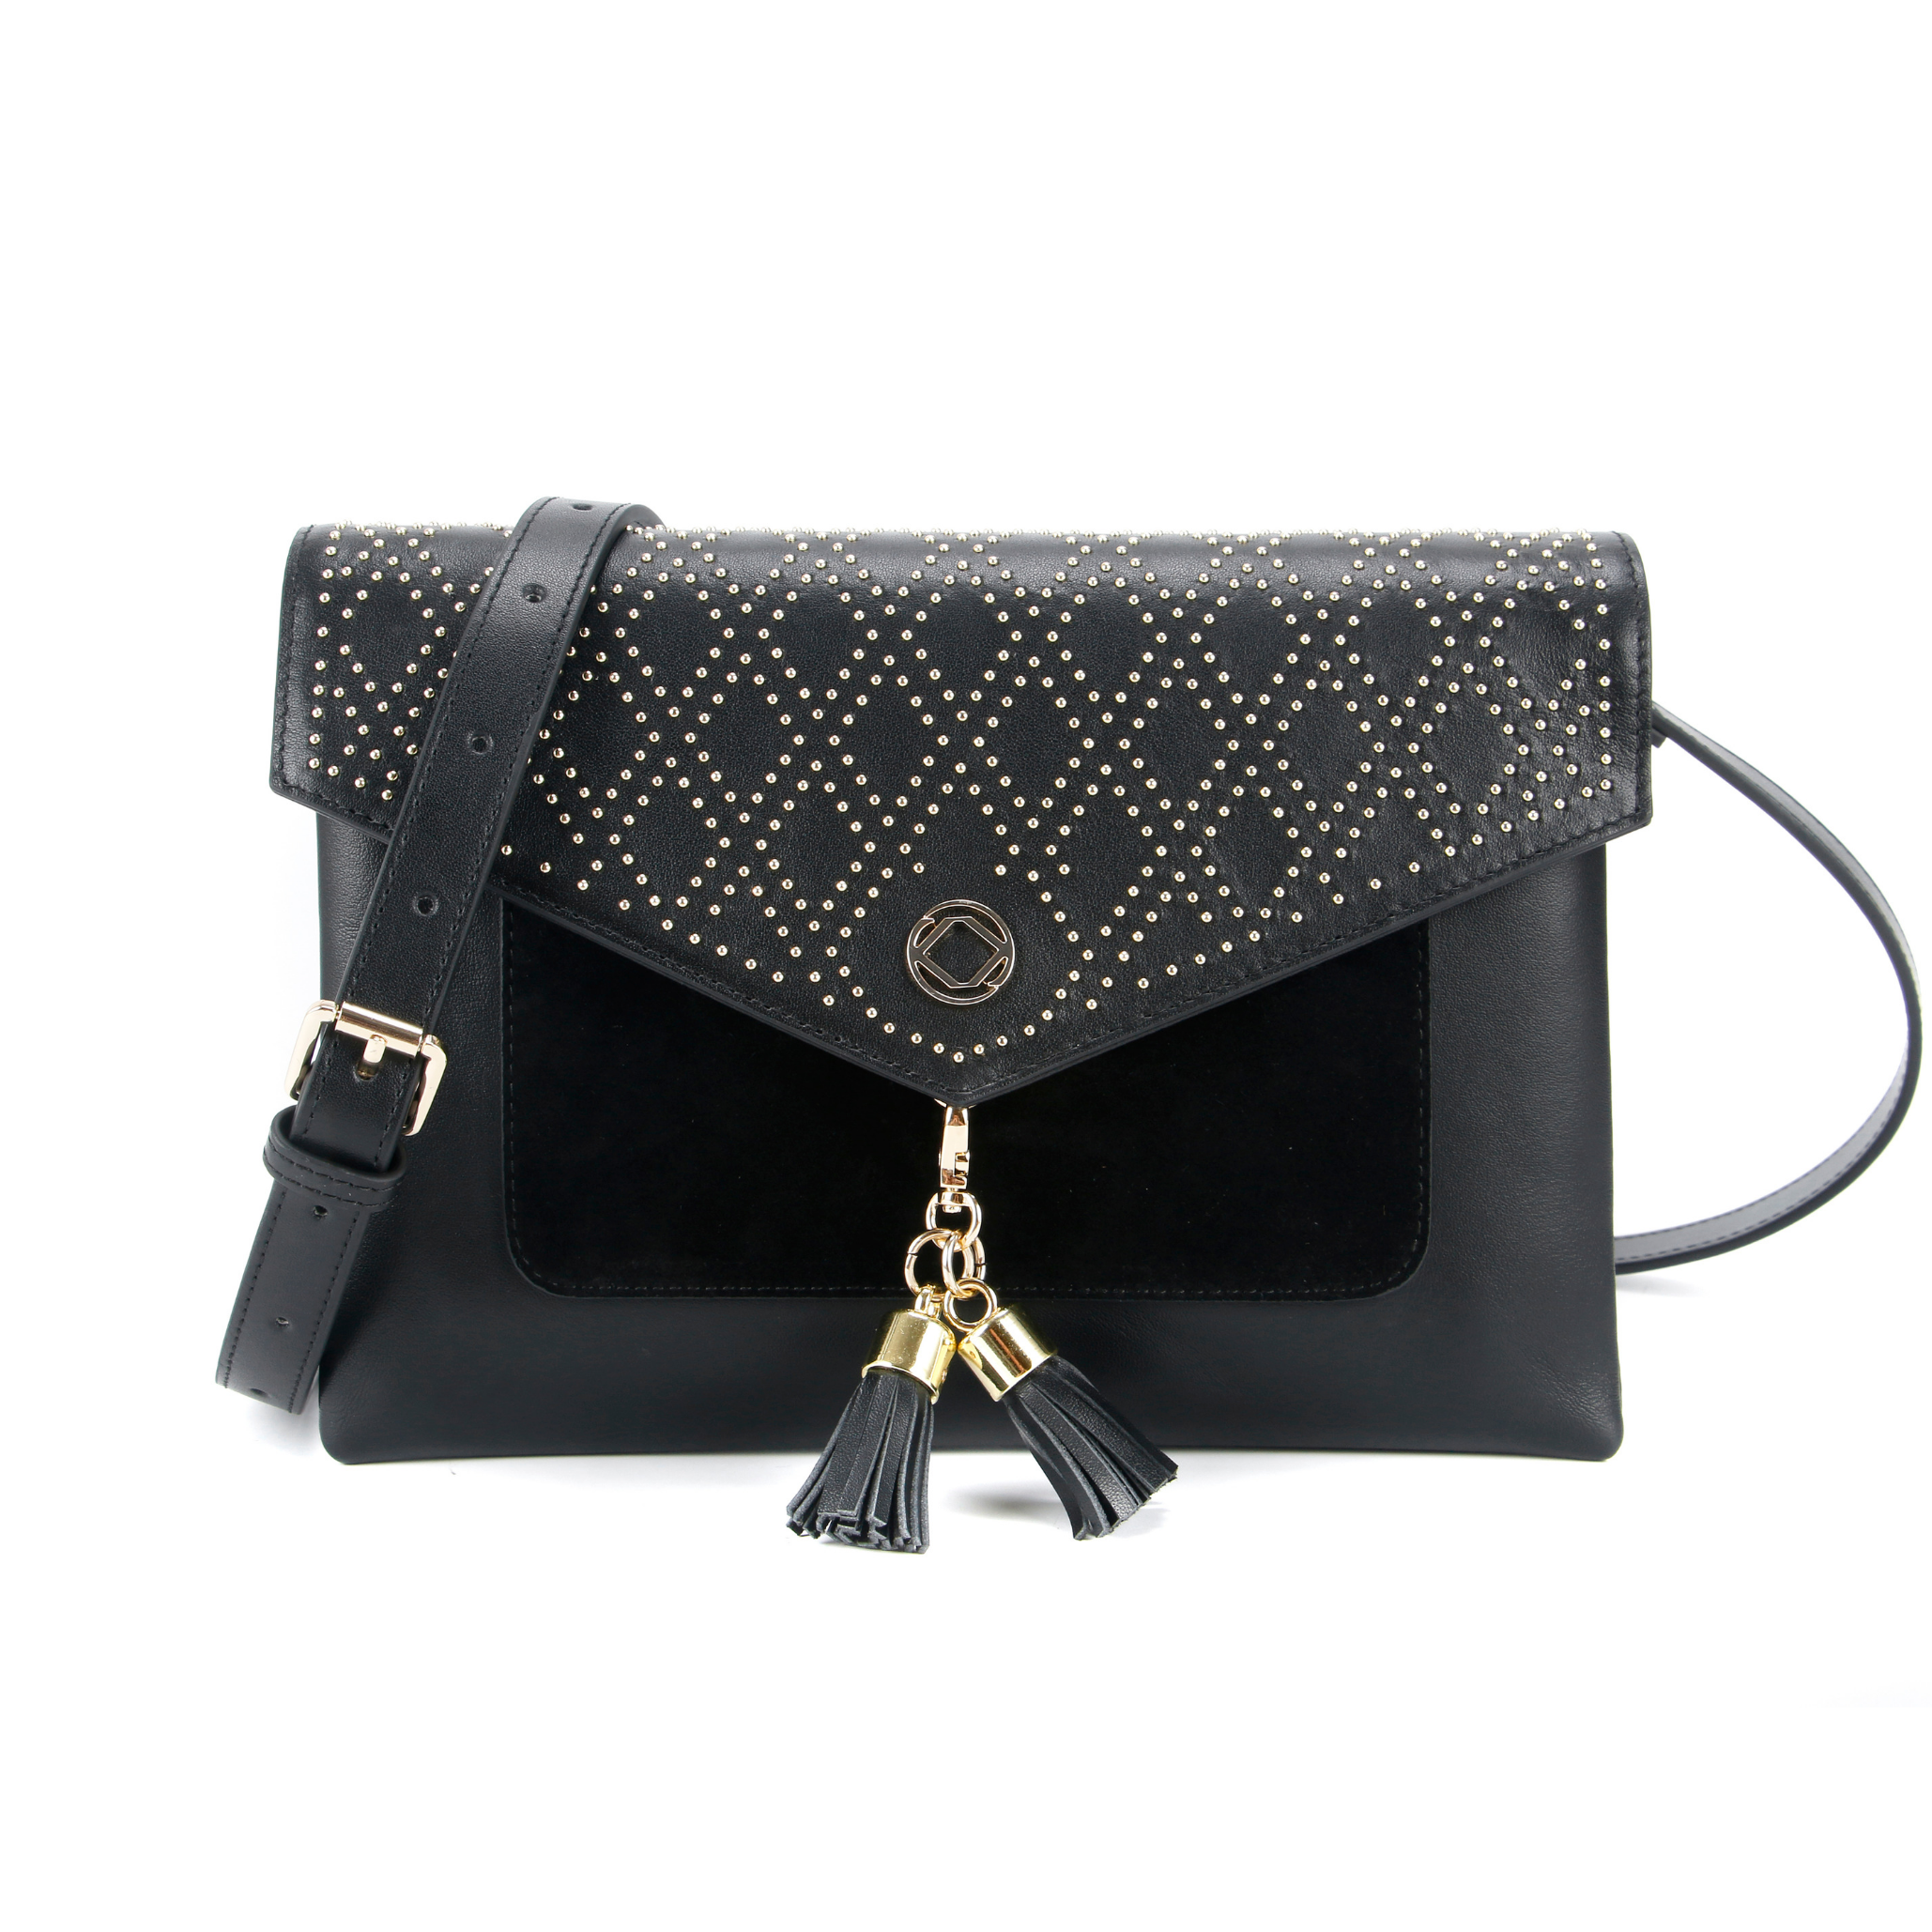 Harry Studded Black Leather Cross Body Bag